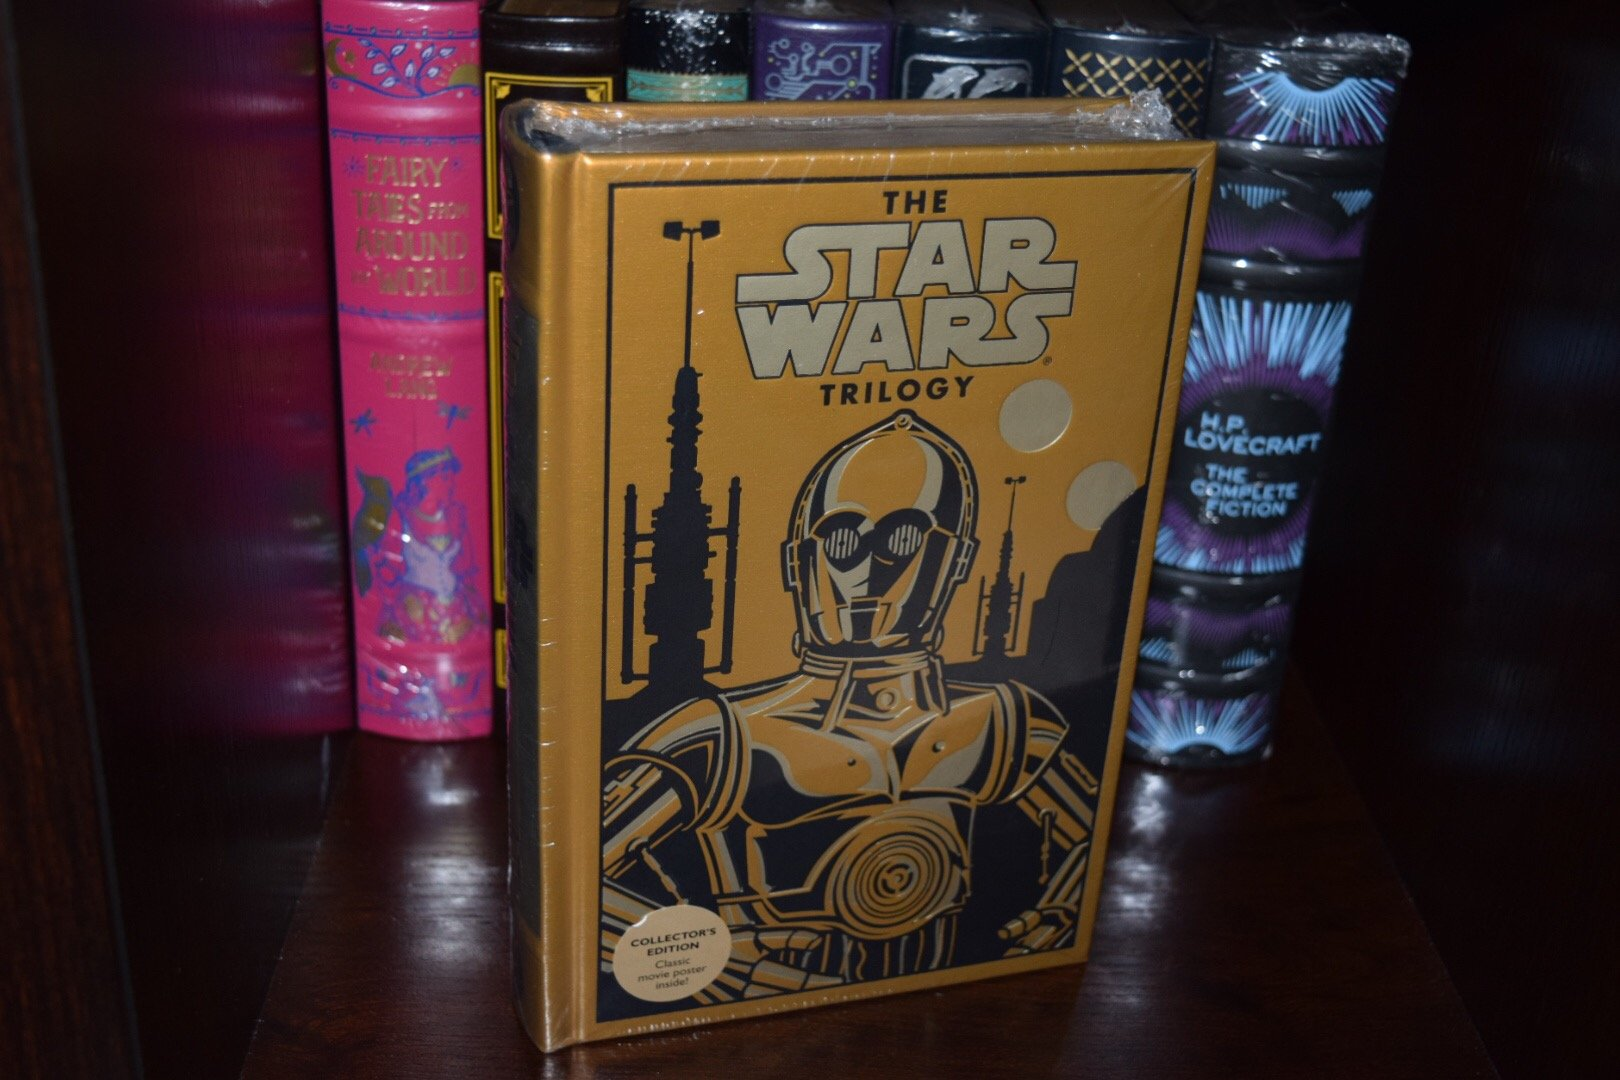 The Star Wars Trilogy Gold Special Edition Hardcover George Lucas 9780385364942 Amazon Com Books